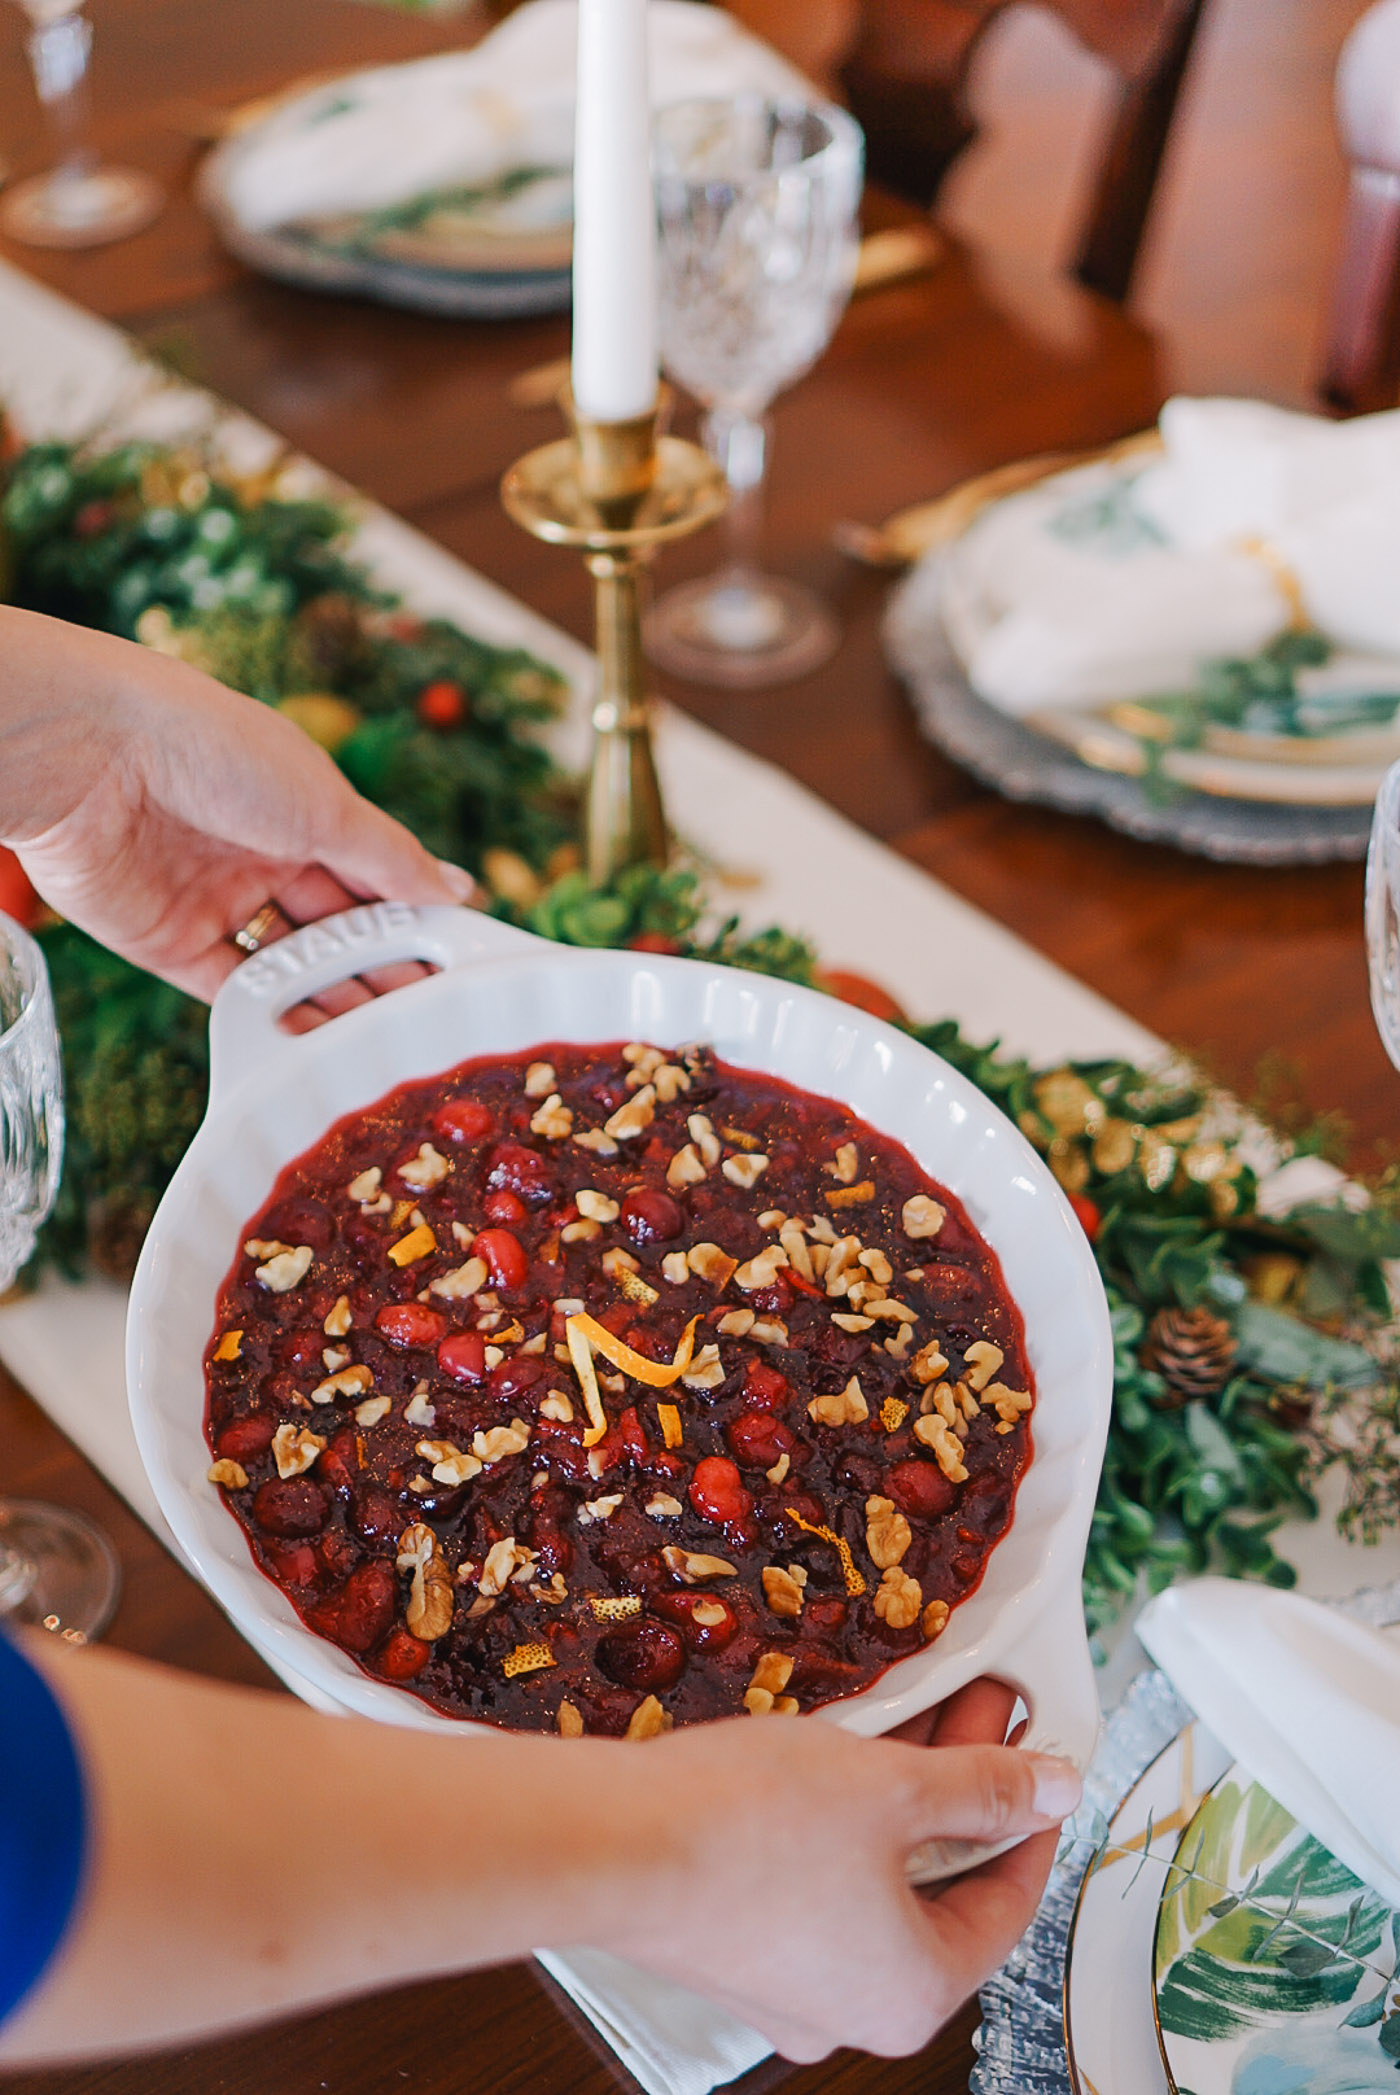 An easy recipe for spiced cranberry sauce by Lauren Cermak of the Southern lifestyle blog, Going For Grace.